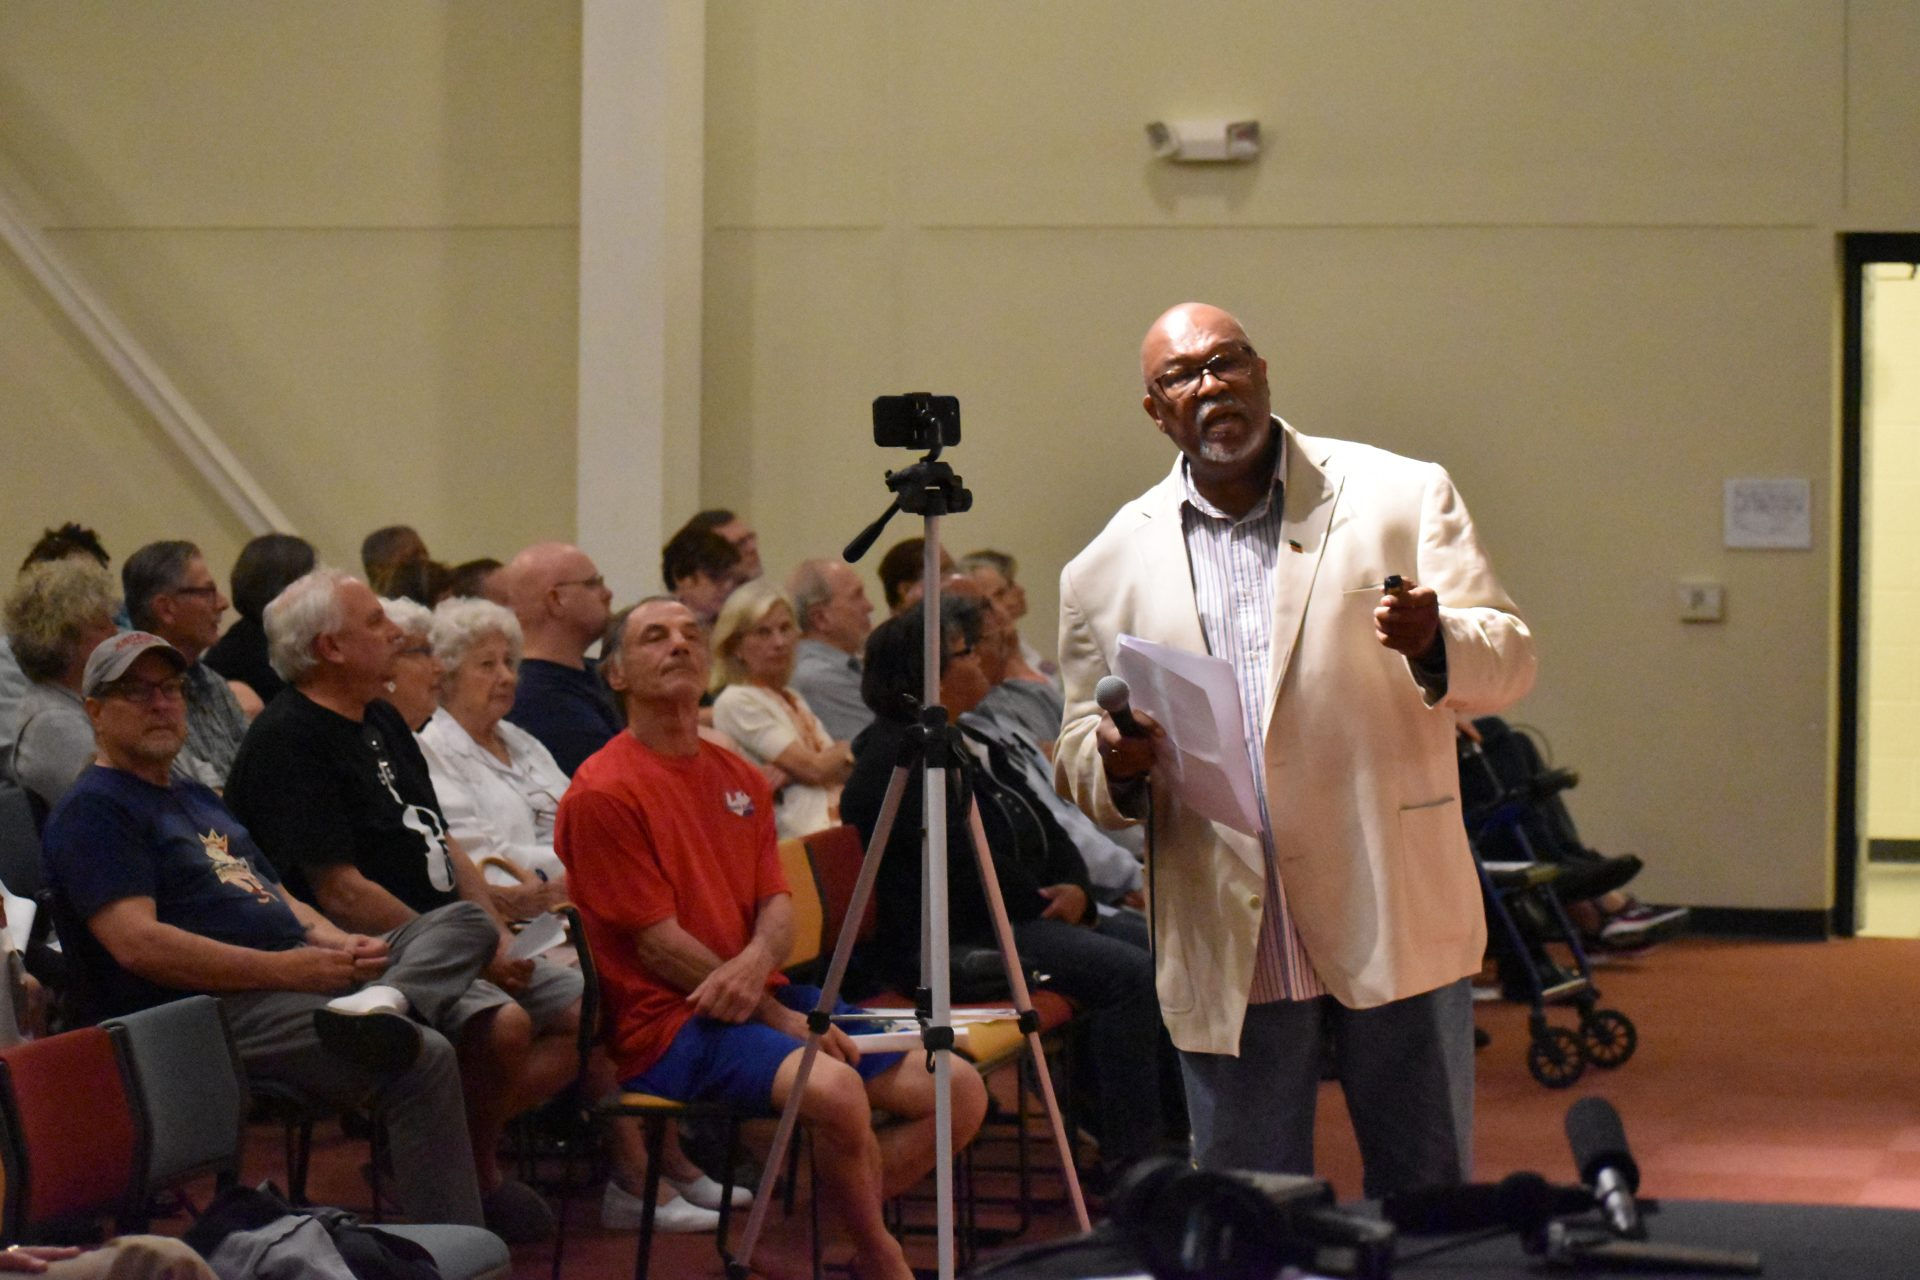 Historian Jeff Kirkland speaks to a crowd at Logos Academy in York on April 23, 2019.